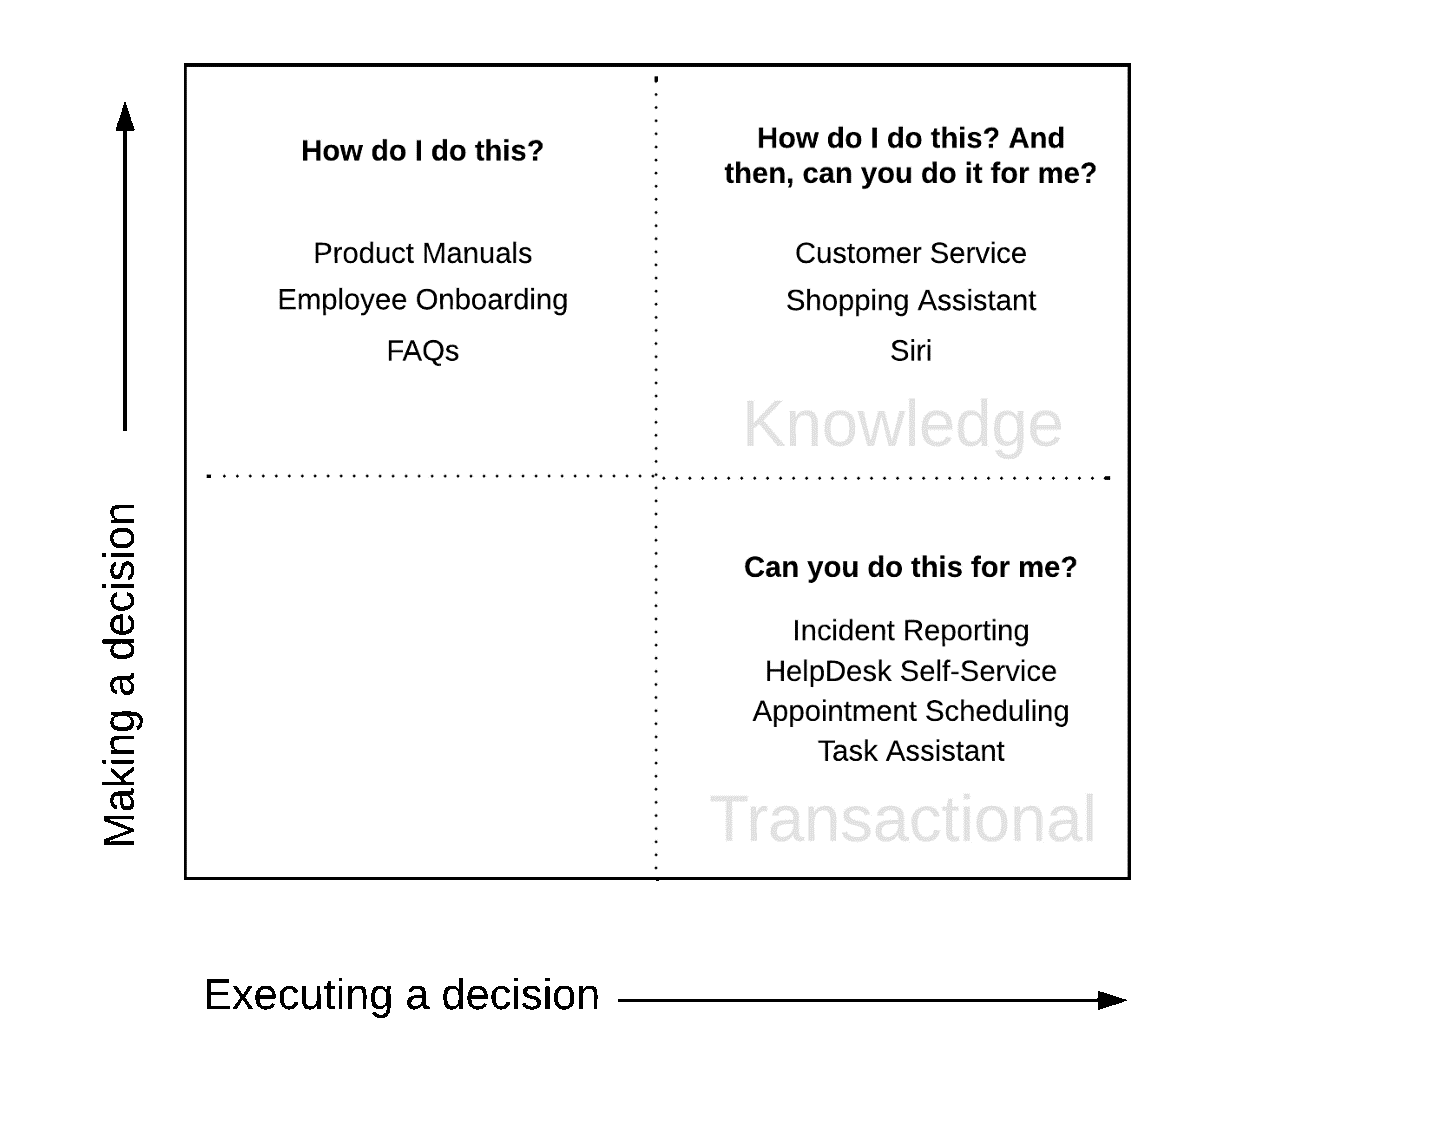 making and executing decisions